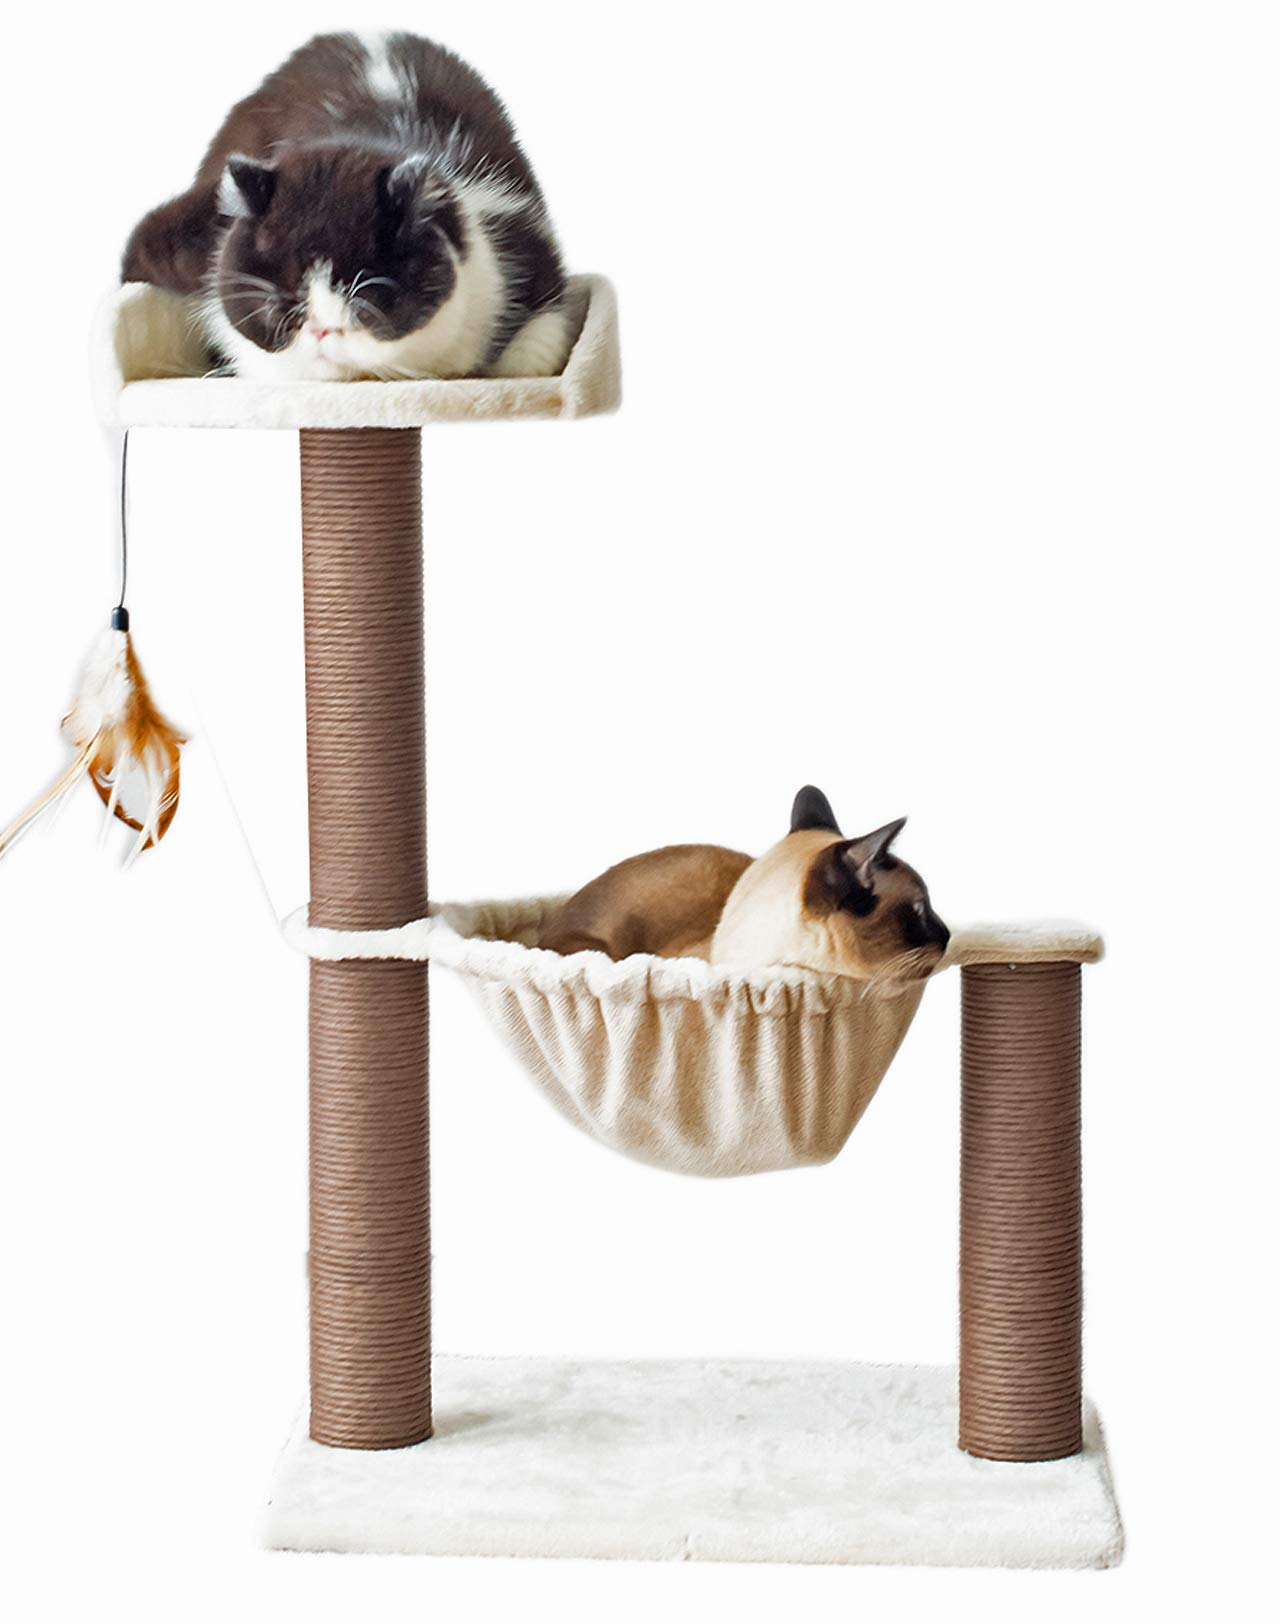 Catry, Cat Tree Hammock Bed with Natural Sisal Scratching Posts and Teasing Feather for Kitten - 19x13x28 in by Catry